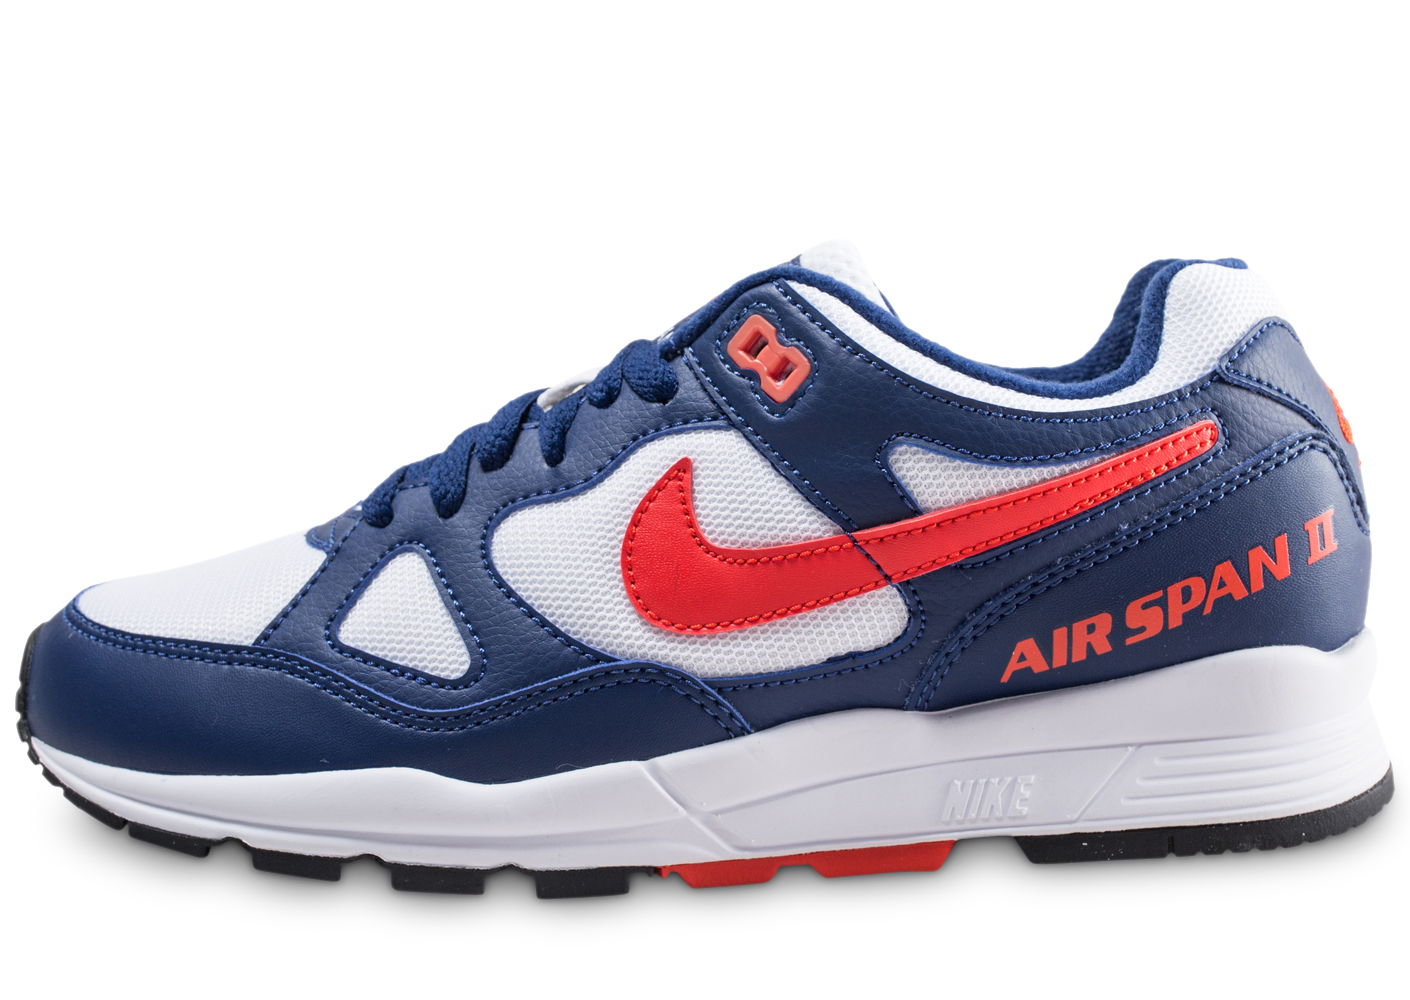 Nike Homme Air Span 2 Bleue Et Rouge Baskets